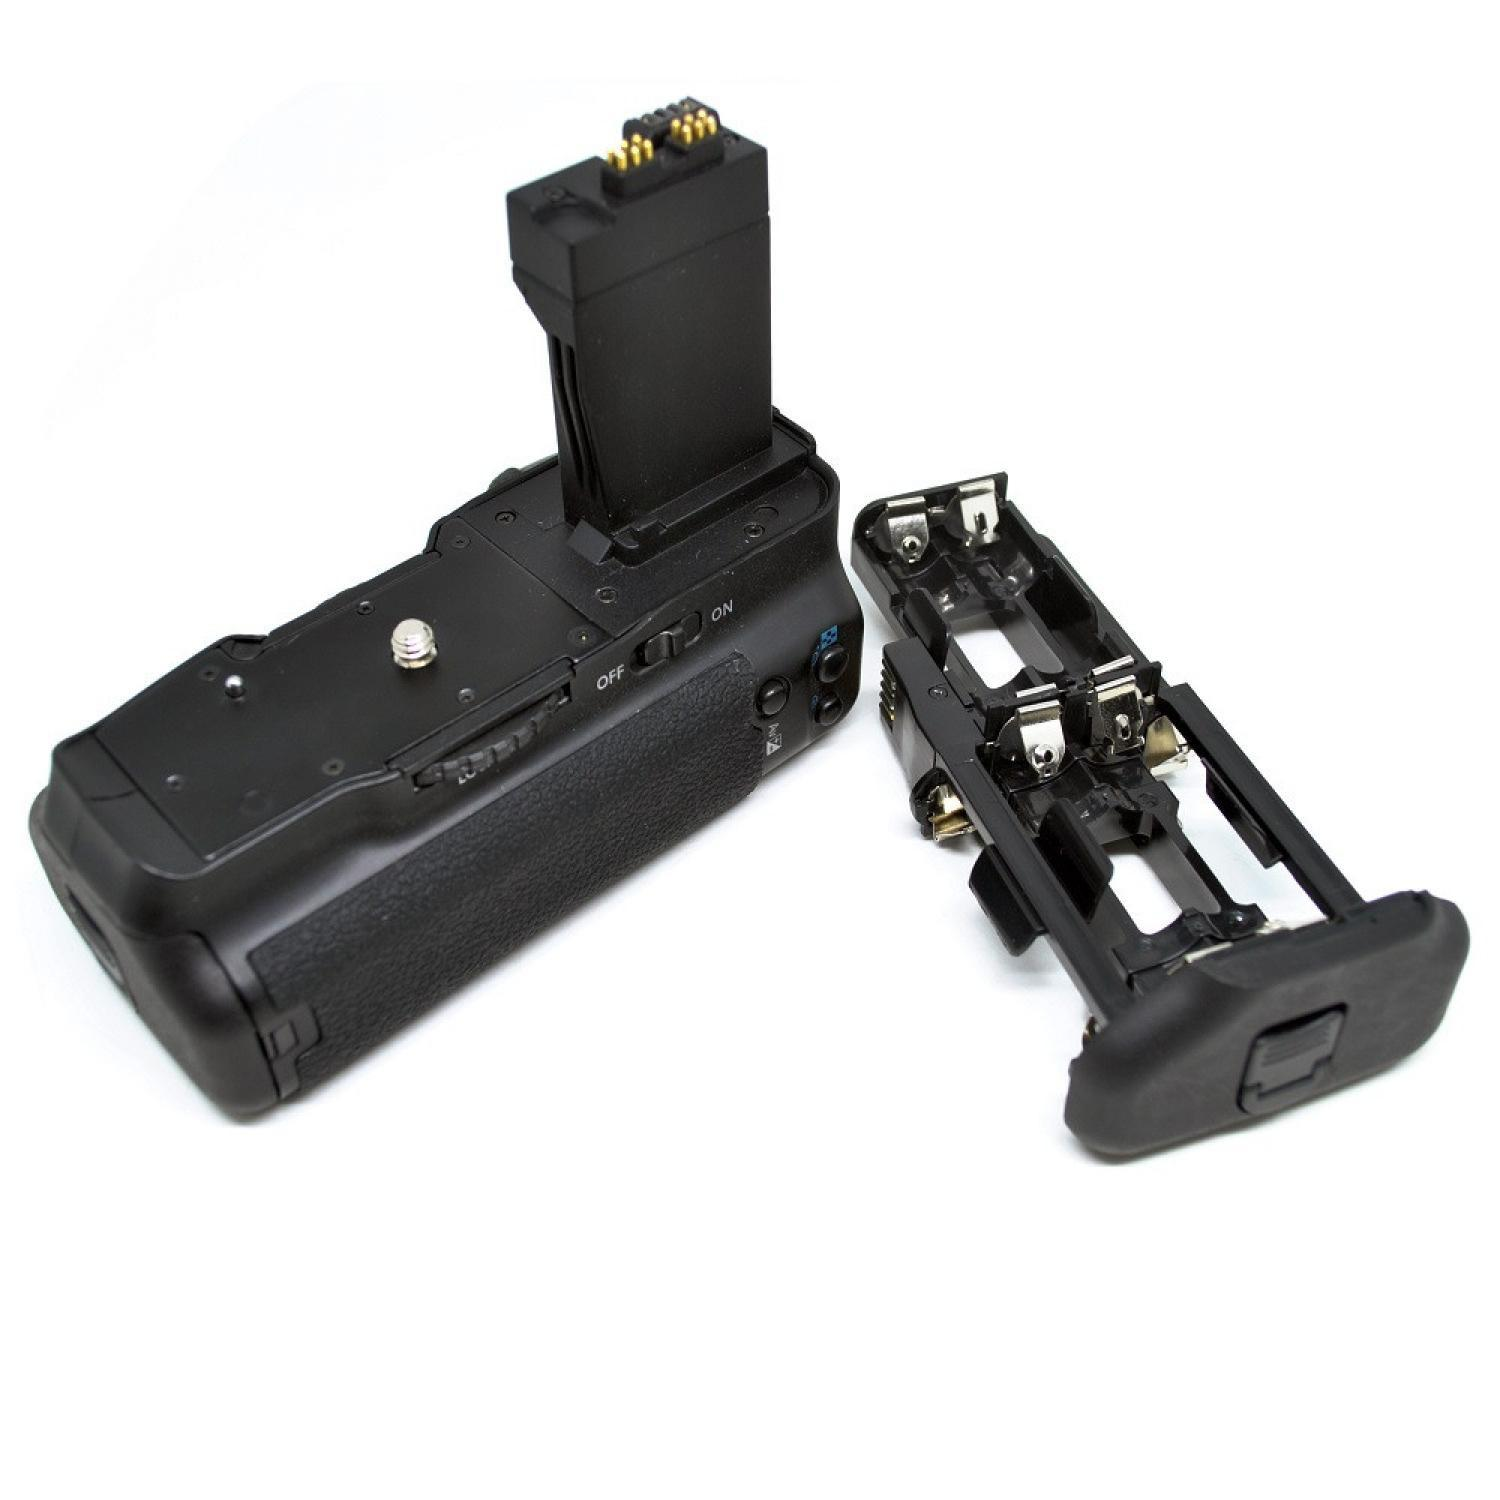 Charger kamera/Charger Kamera canon Battery Grip for Canon EOS 550D/600D/650D/700D